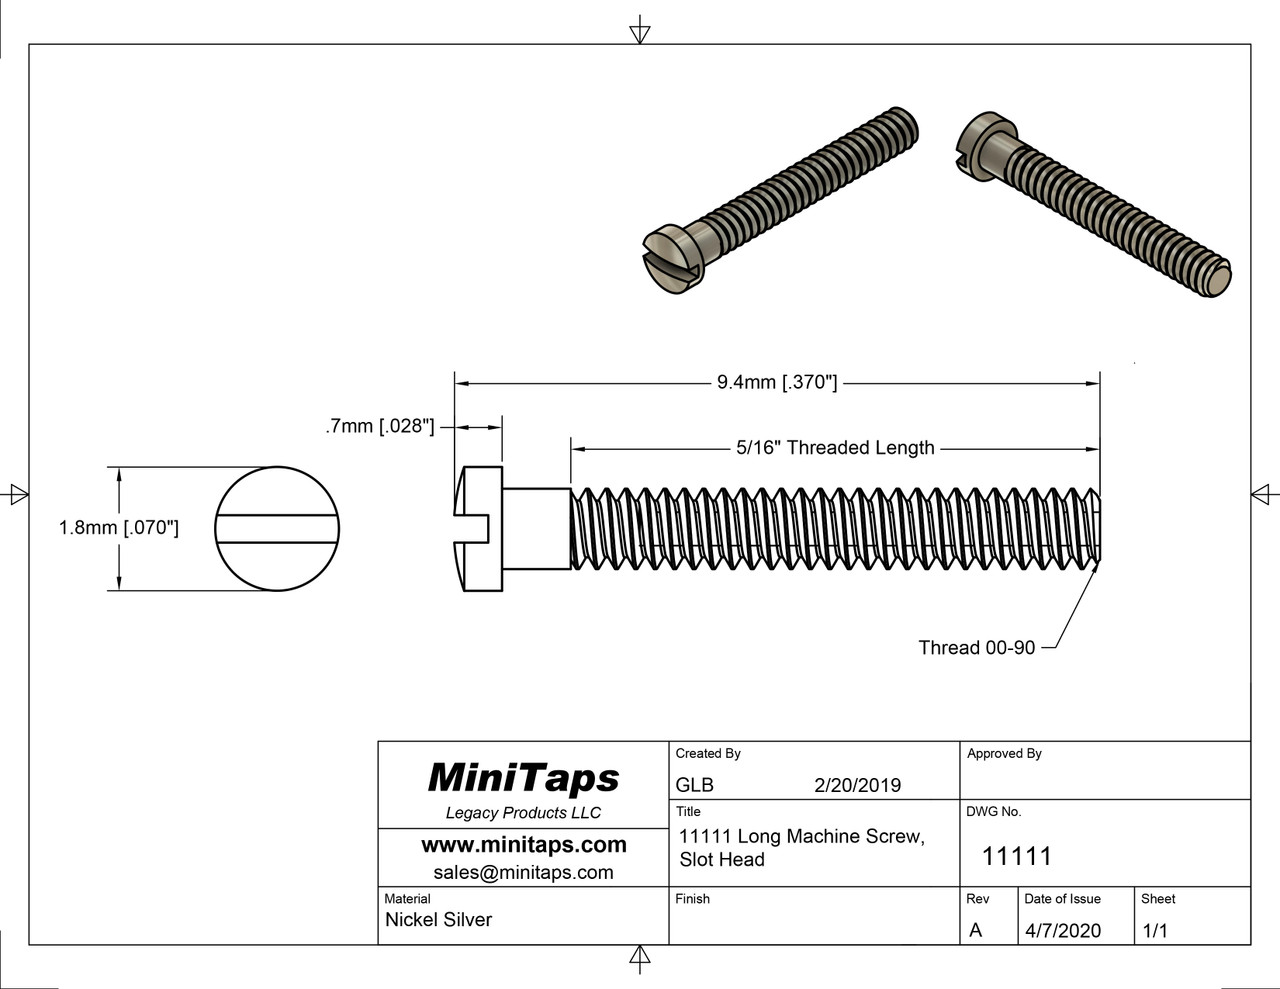 """Machine Screw  Thread 00-90 (0.046"""",) Overall Length (OAL) 9.4mm, Threaded Length 5/16"""", Head diameter 1.8mm  Material: Nickel Silver, a premium copper alloy resistant to tarnish and often used in Jewelry and eyewear.  Part Color is Silver  Also available in Gold color finish (11111G)  Matching hex nut # 11101 or 11101G in gold.   Price is for 100 count package with bulk pricing available. Please contact sales@minitaps.com for bulk pricing pricing or any additional questions or information."""